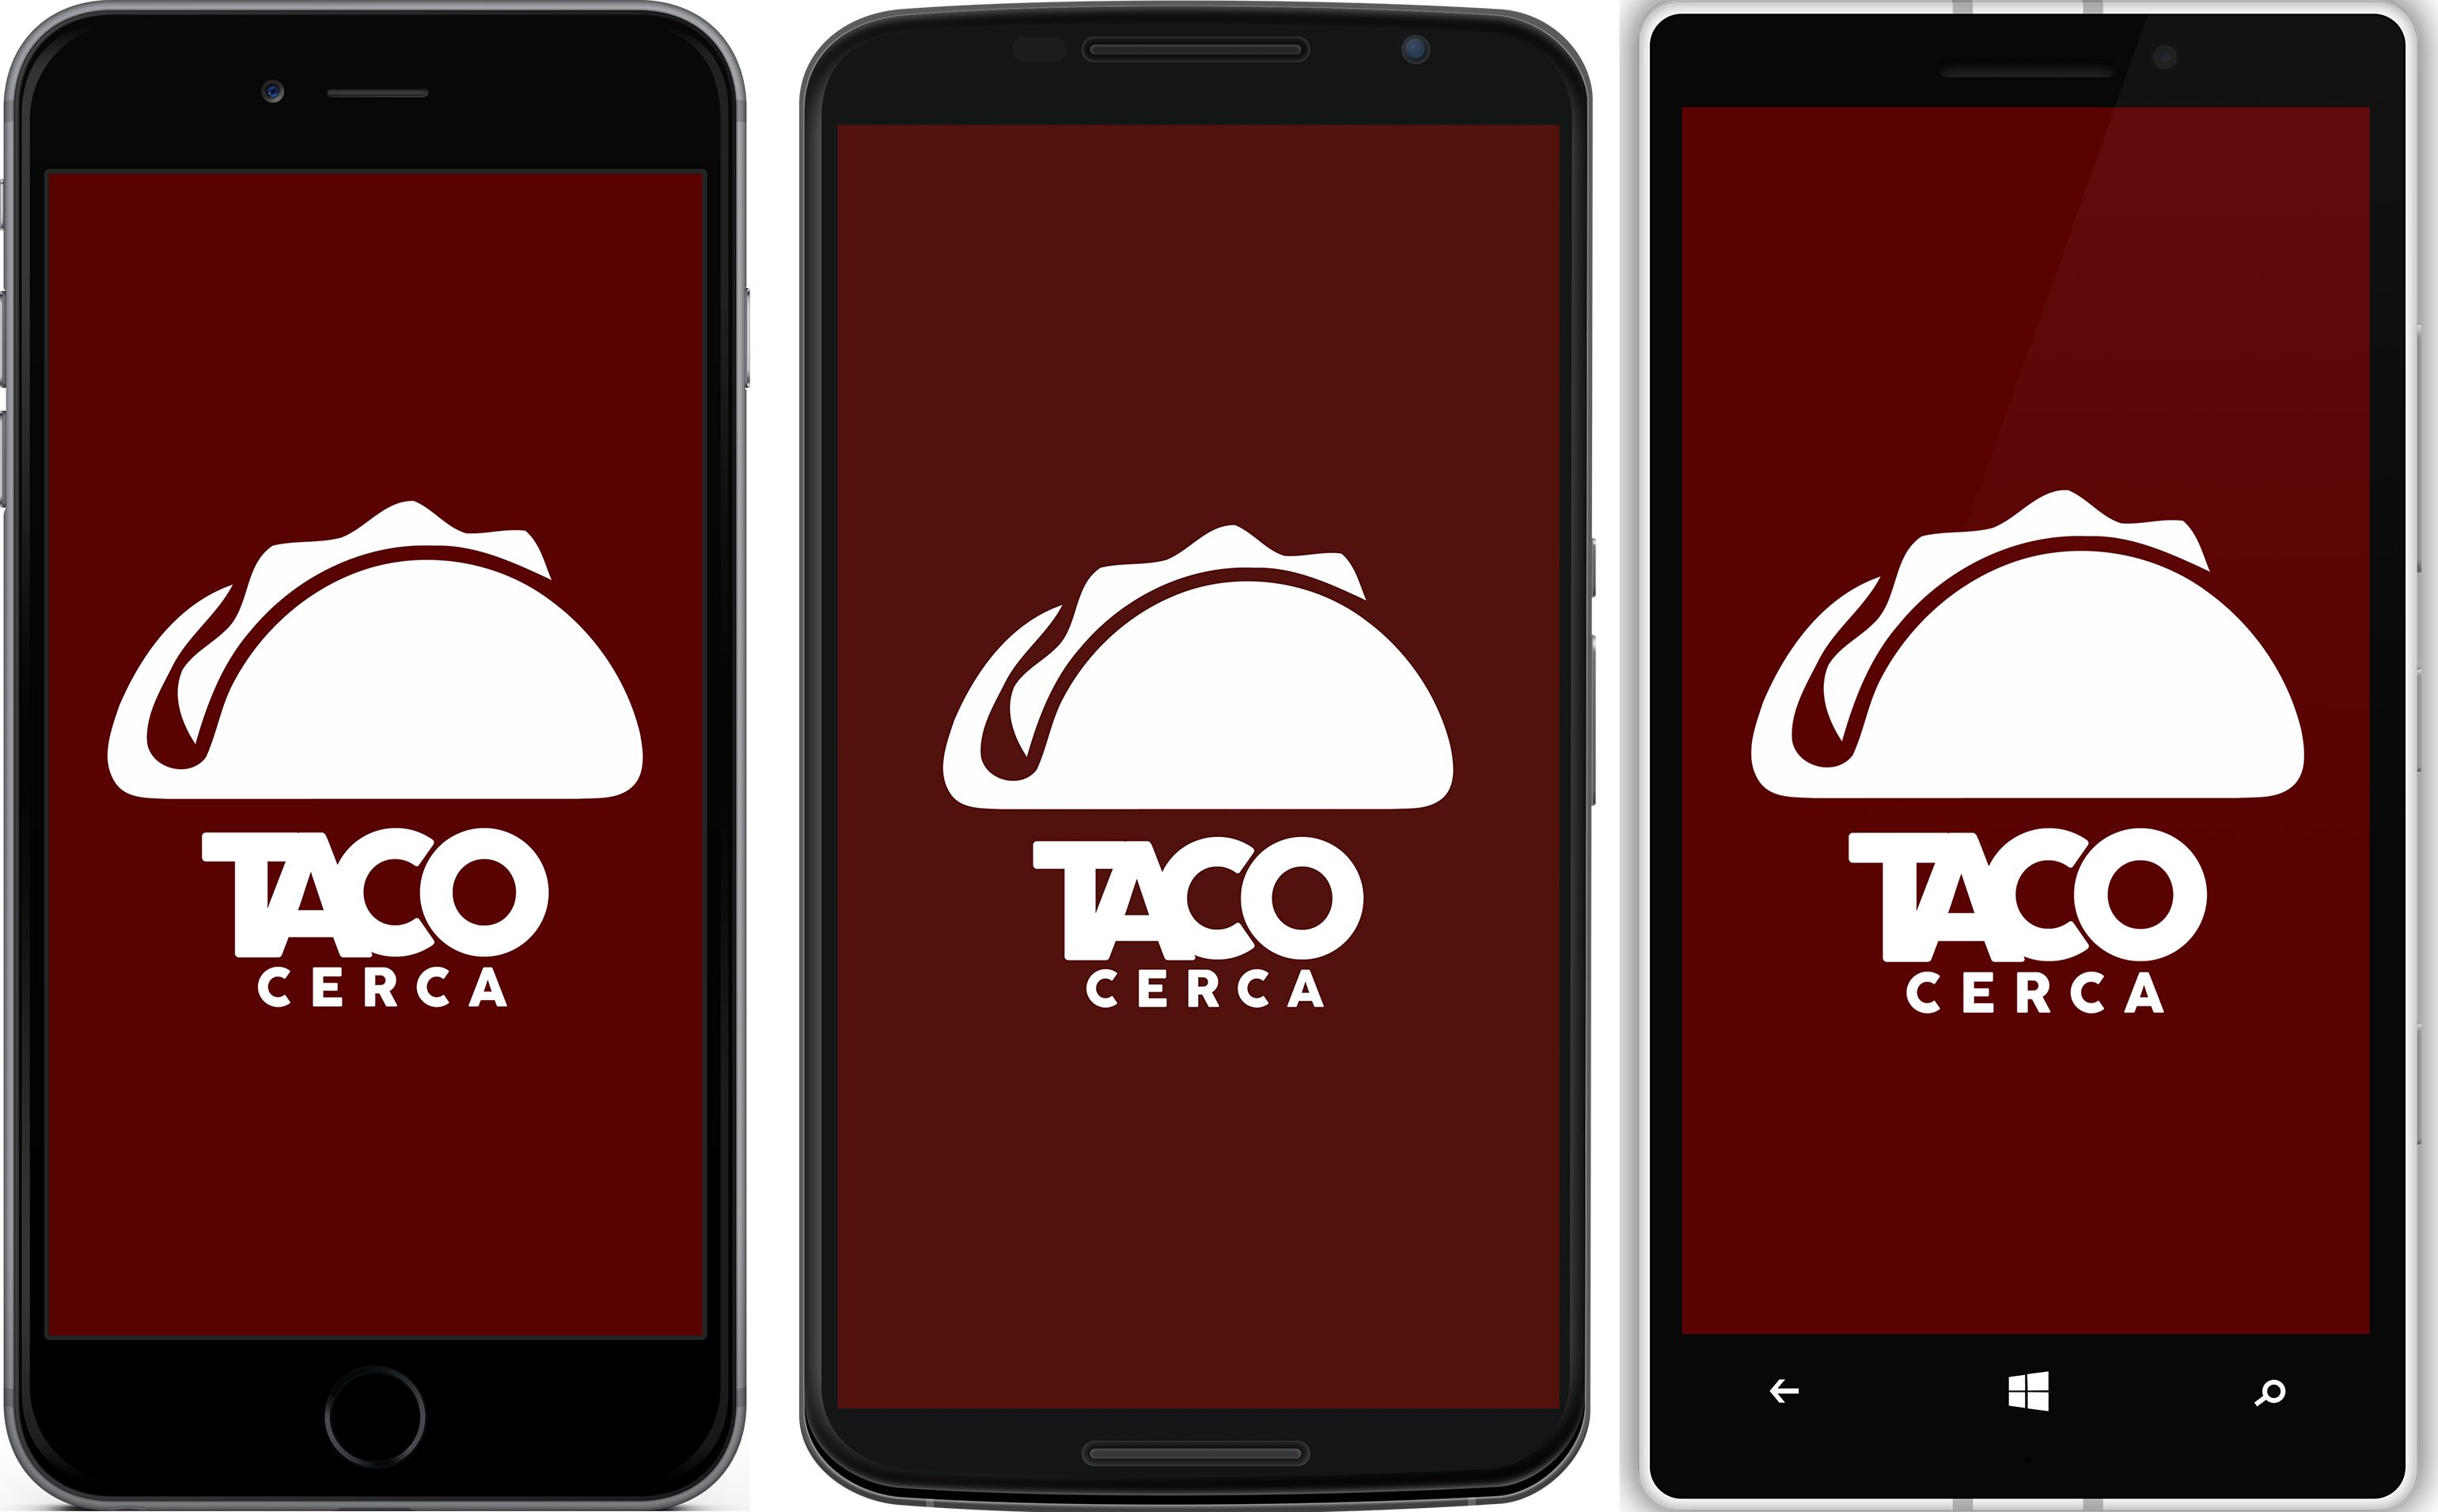 tacocerca-OS-red-2